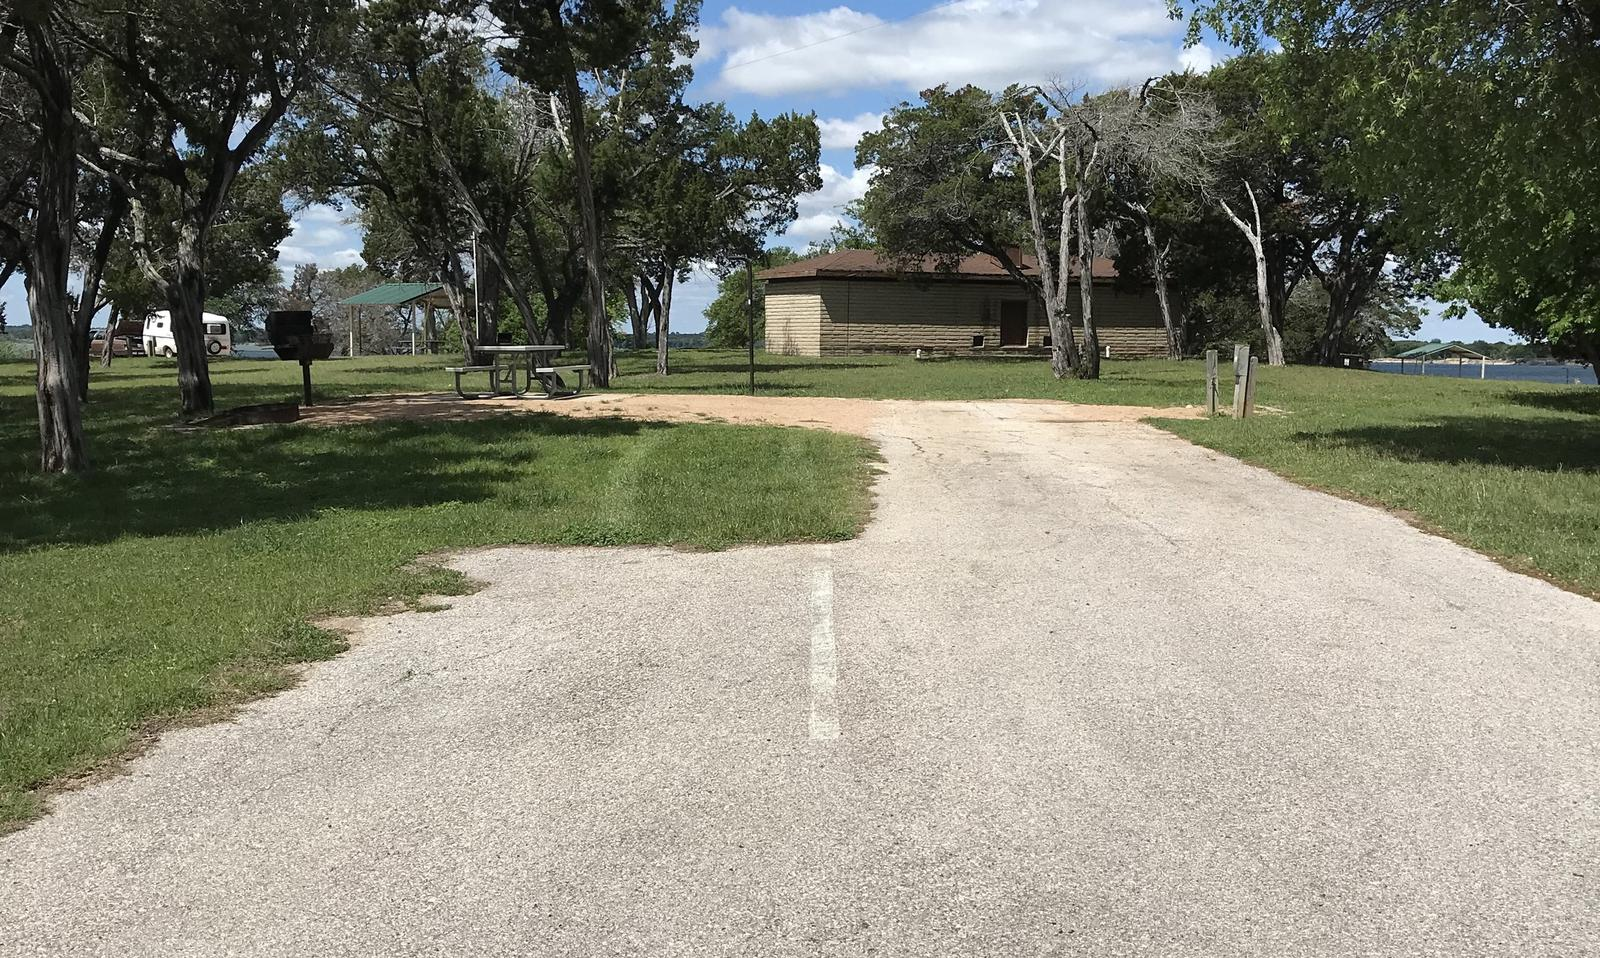 RV site with grill, fire ring, picnic table, and restroom/shower facilities nearby